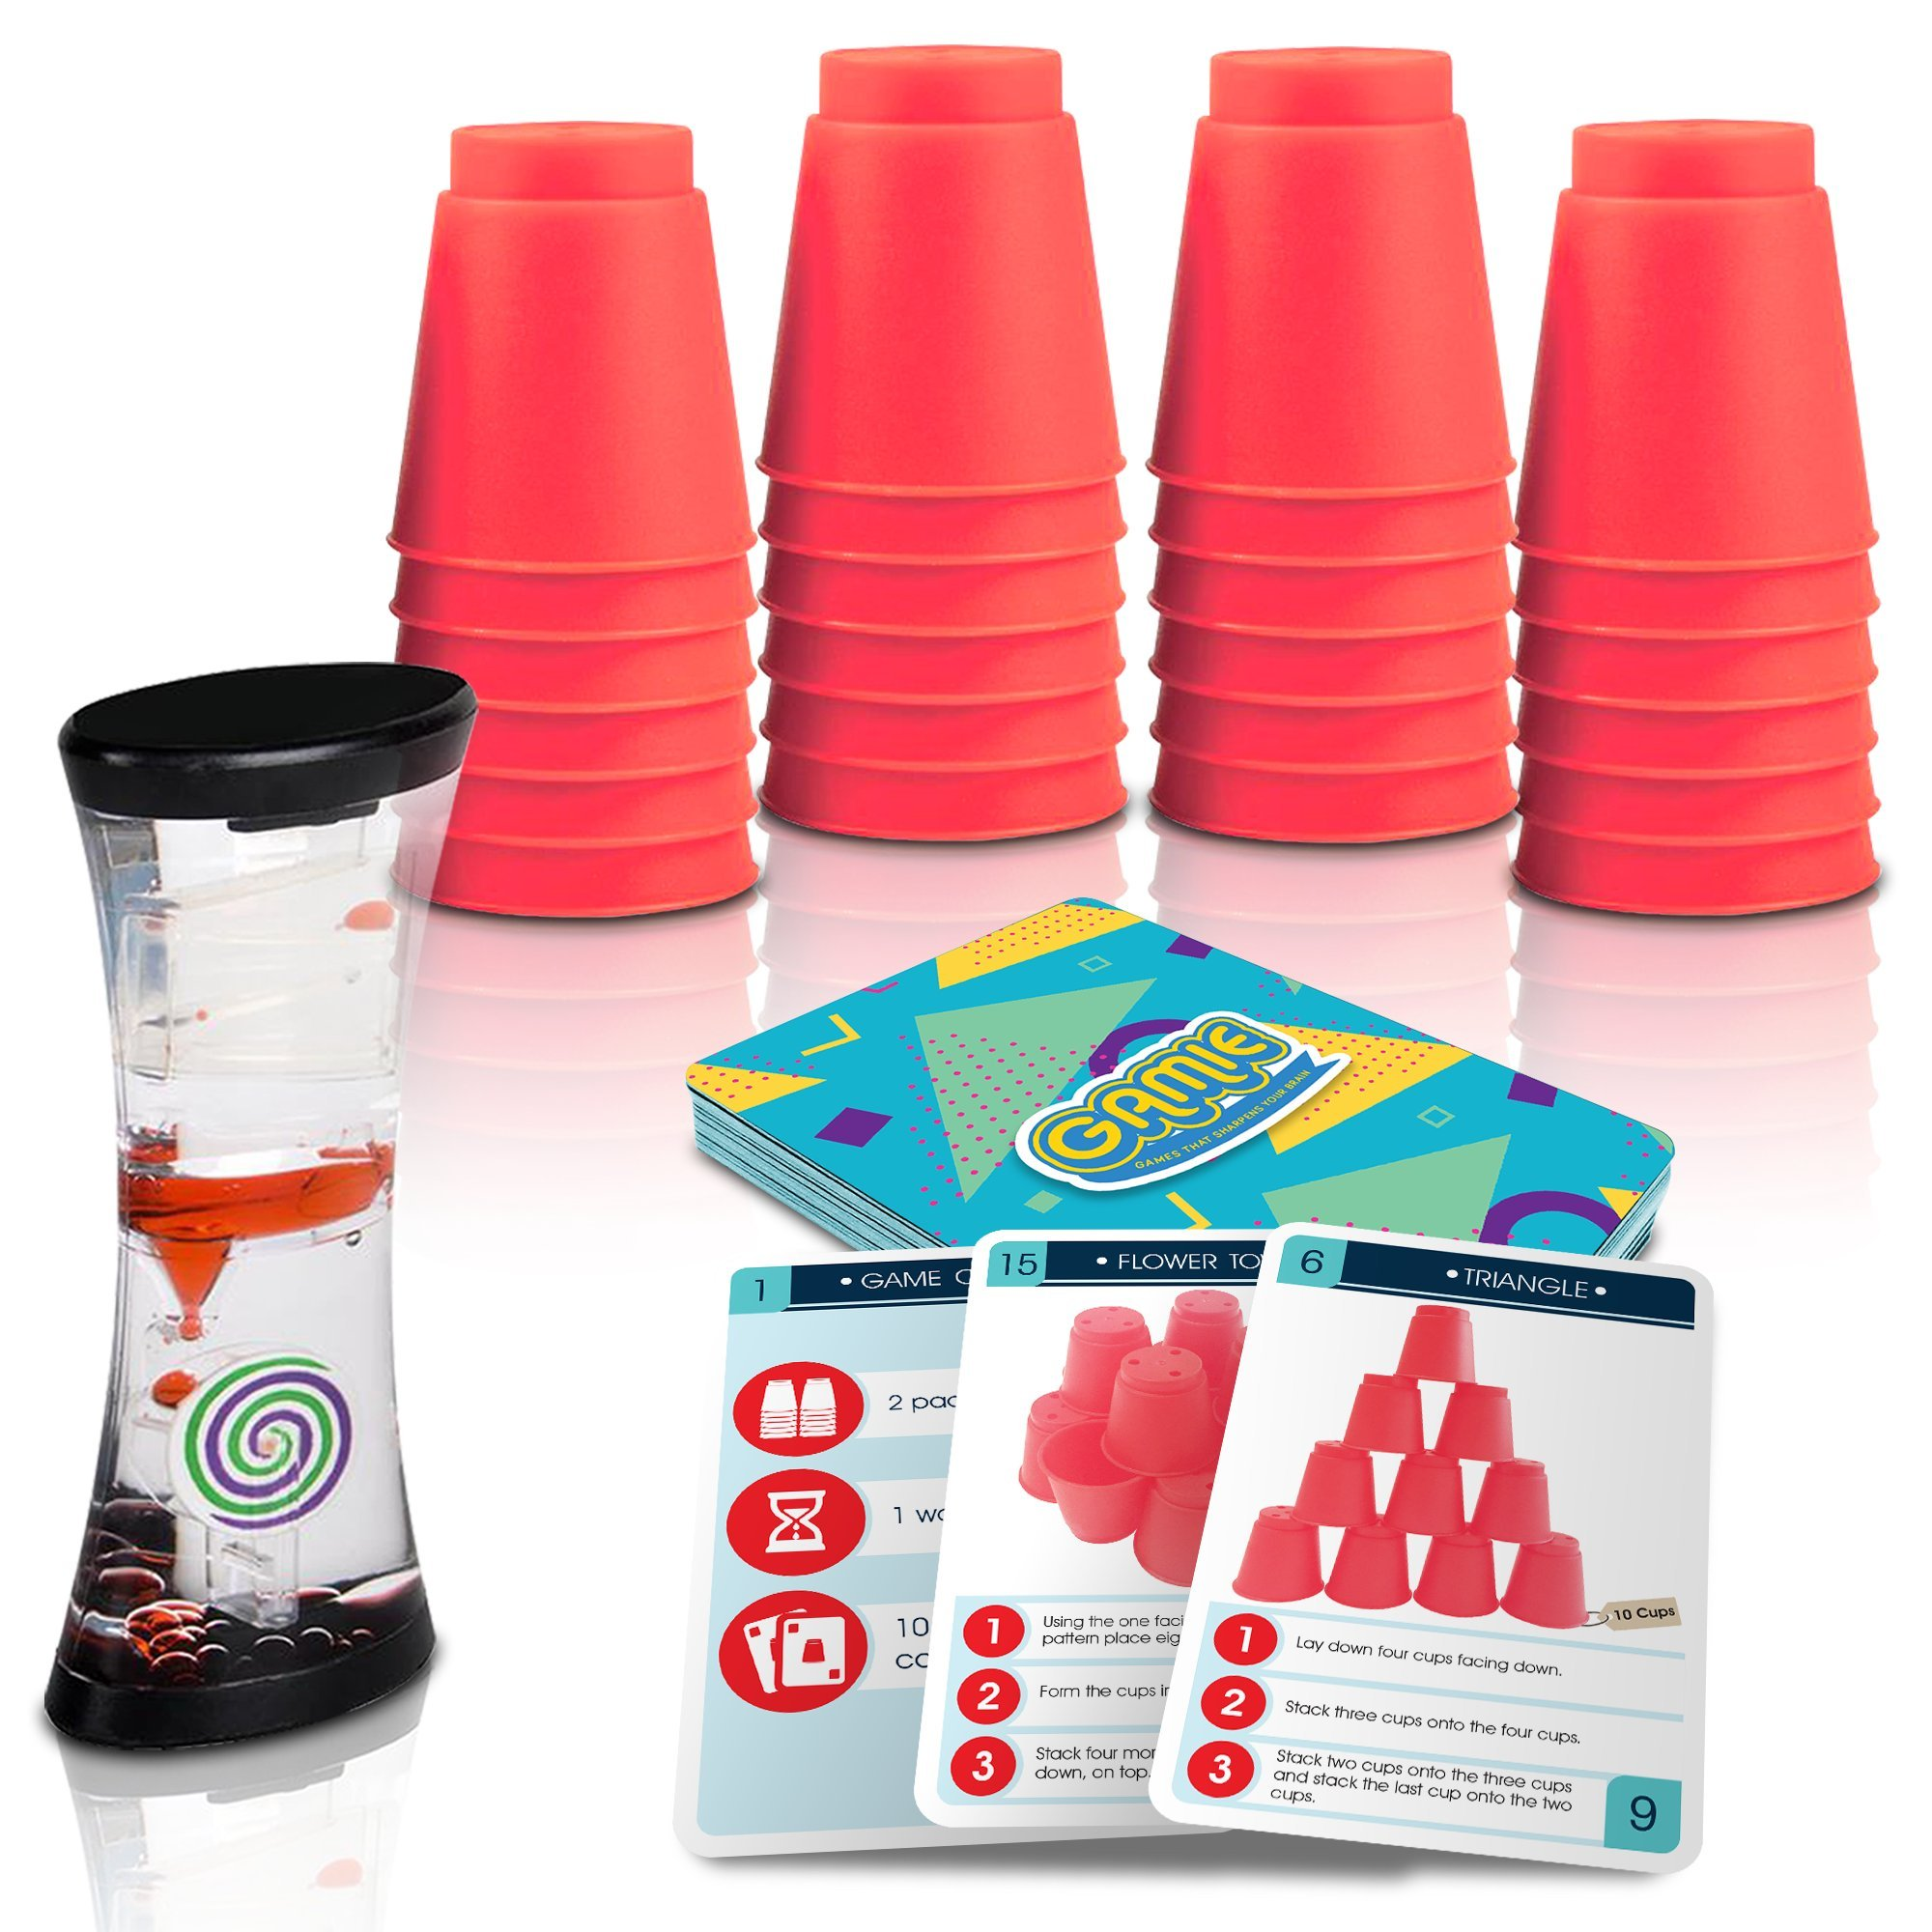 Gamie Stacking Cups Game with 18 Fun Challenges and Water Timer, 24 Stacking Cups, Sturdy Plastic, Classic Family Game, Travel and Summer Game for Kids, Tons of Fun by Gamie